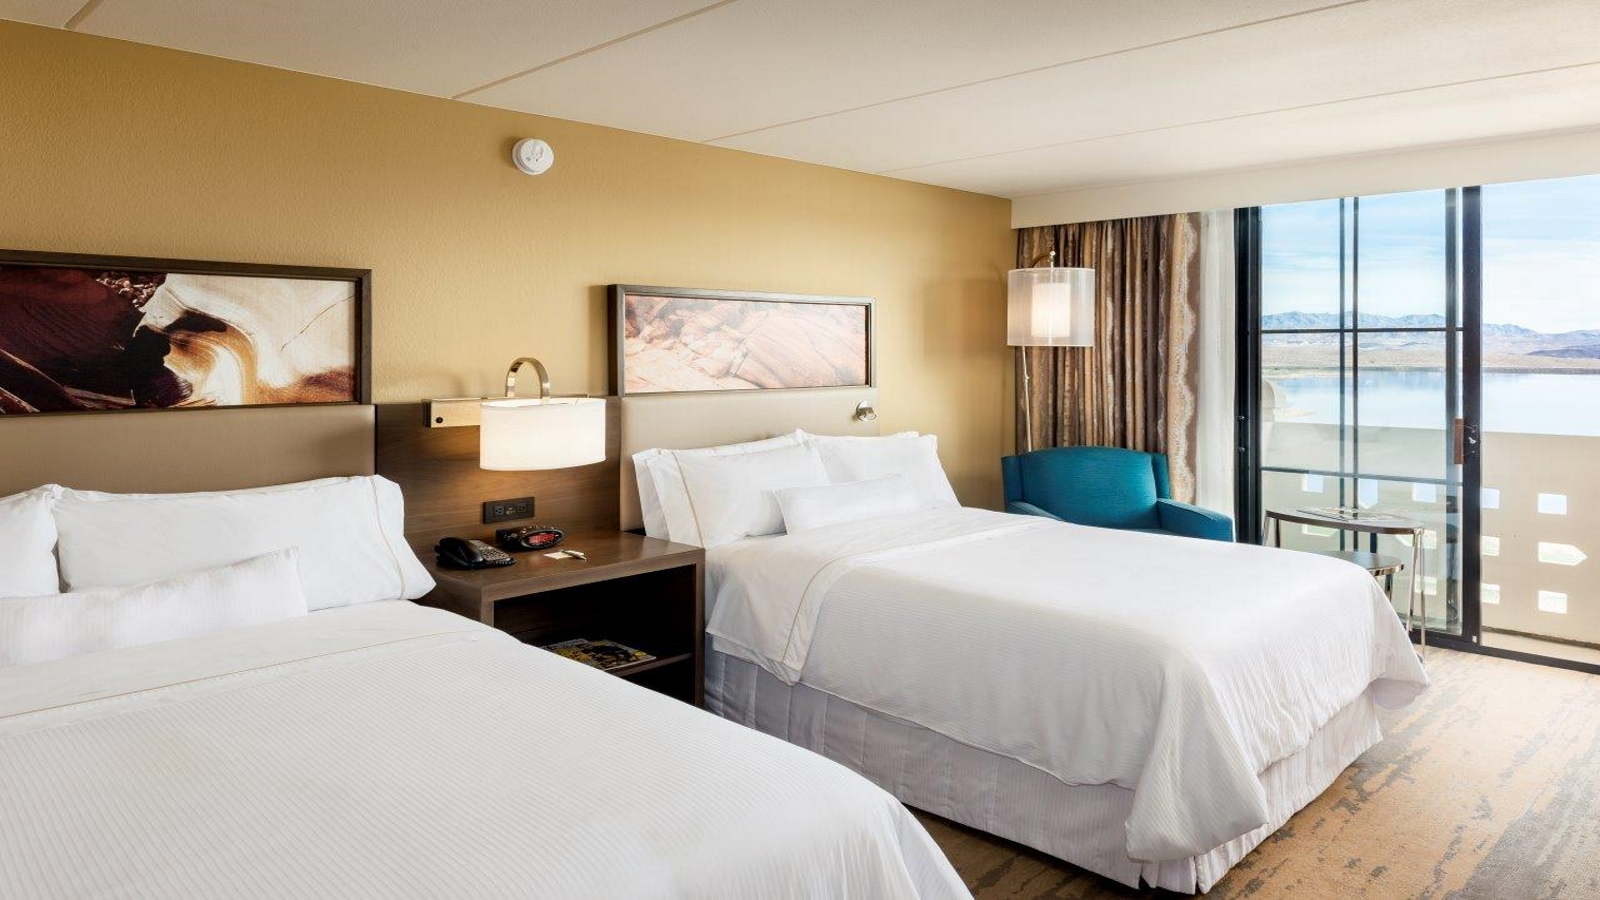 Hotels in Lake Las Vegas - deluxe room